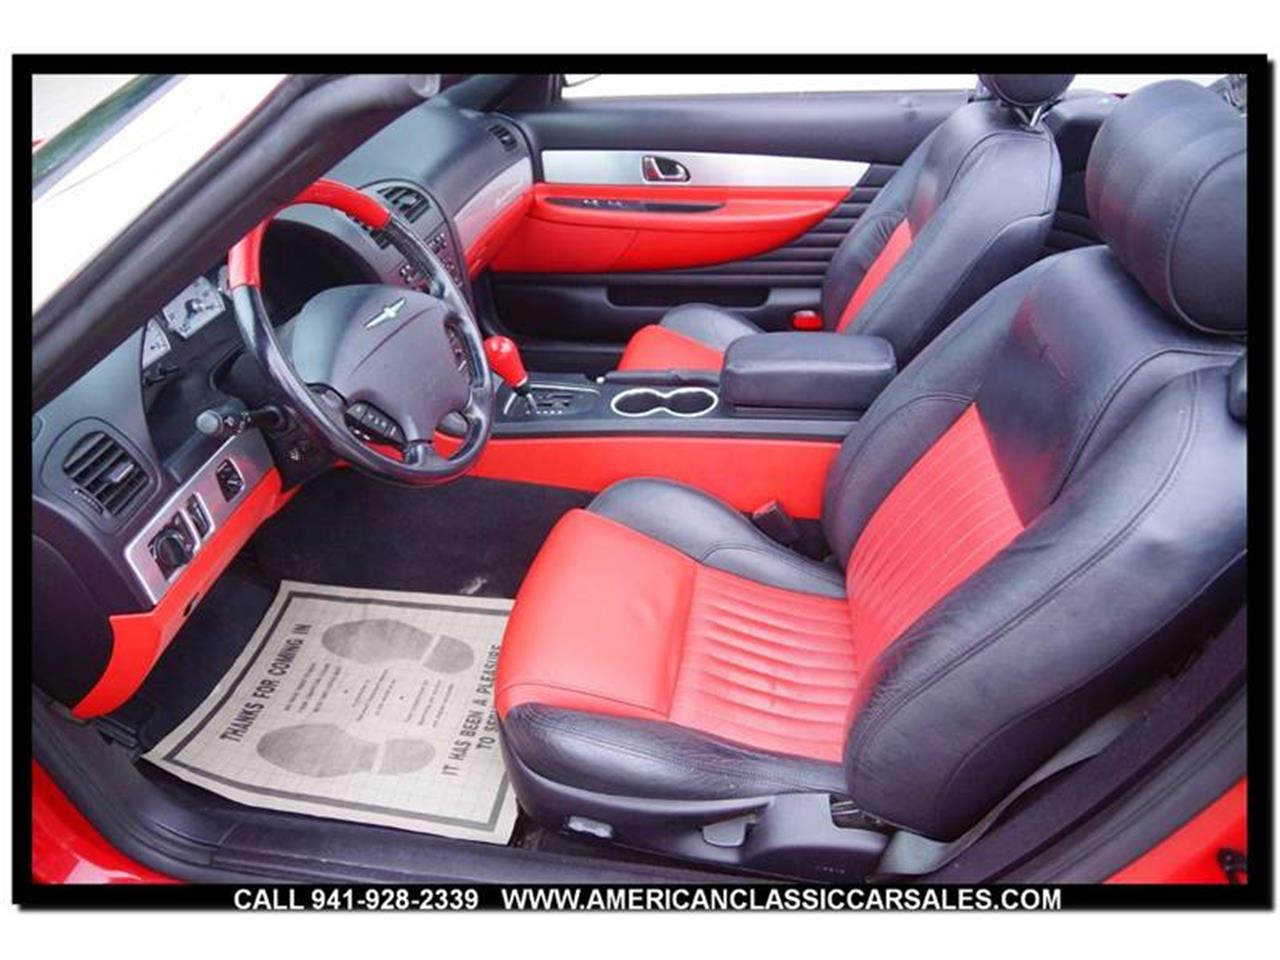 Large Picture of '04 Thunderbird - $12,440.00 - MCAN